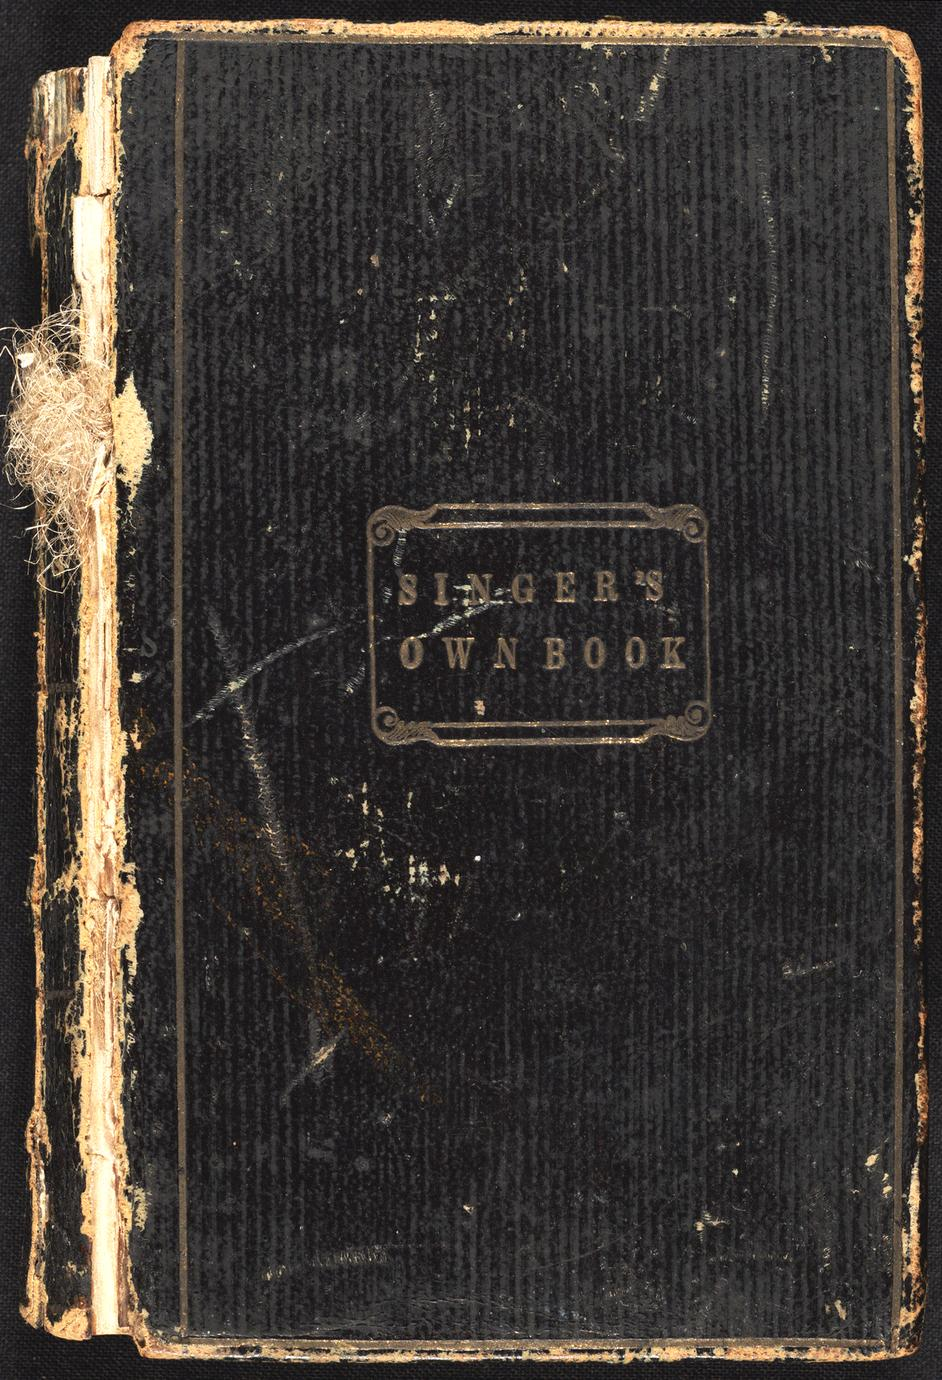 The singer's own book : well-selected collection of the most popular sentimental, patriotic, naval, and comic songs (1 of 2)